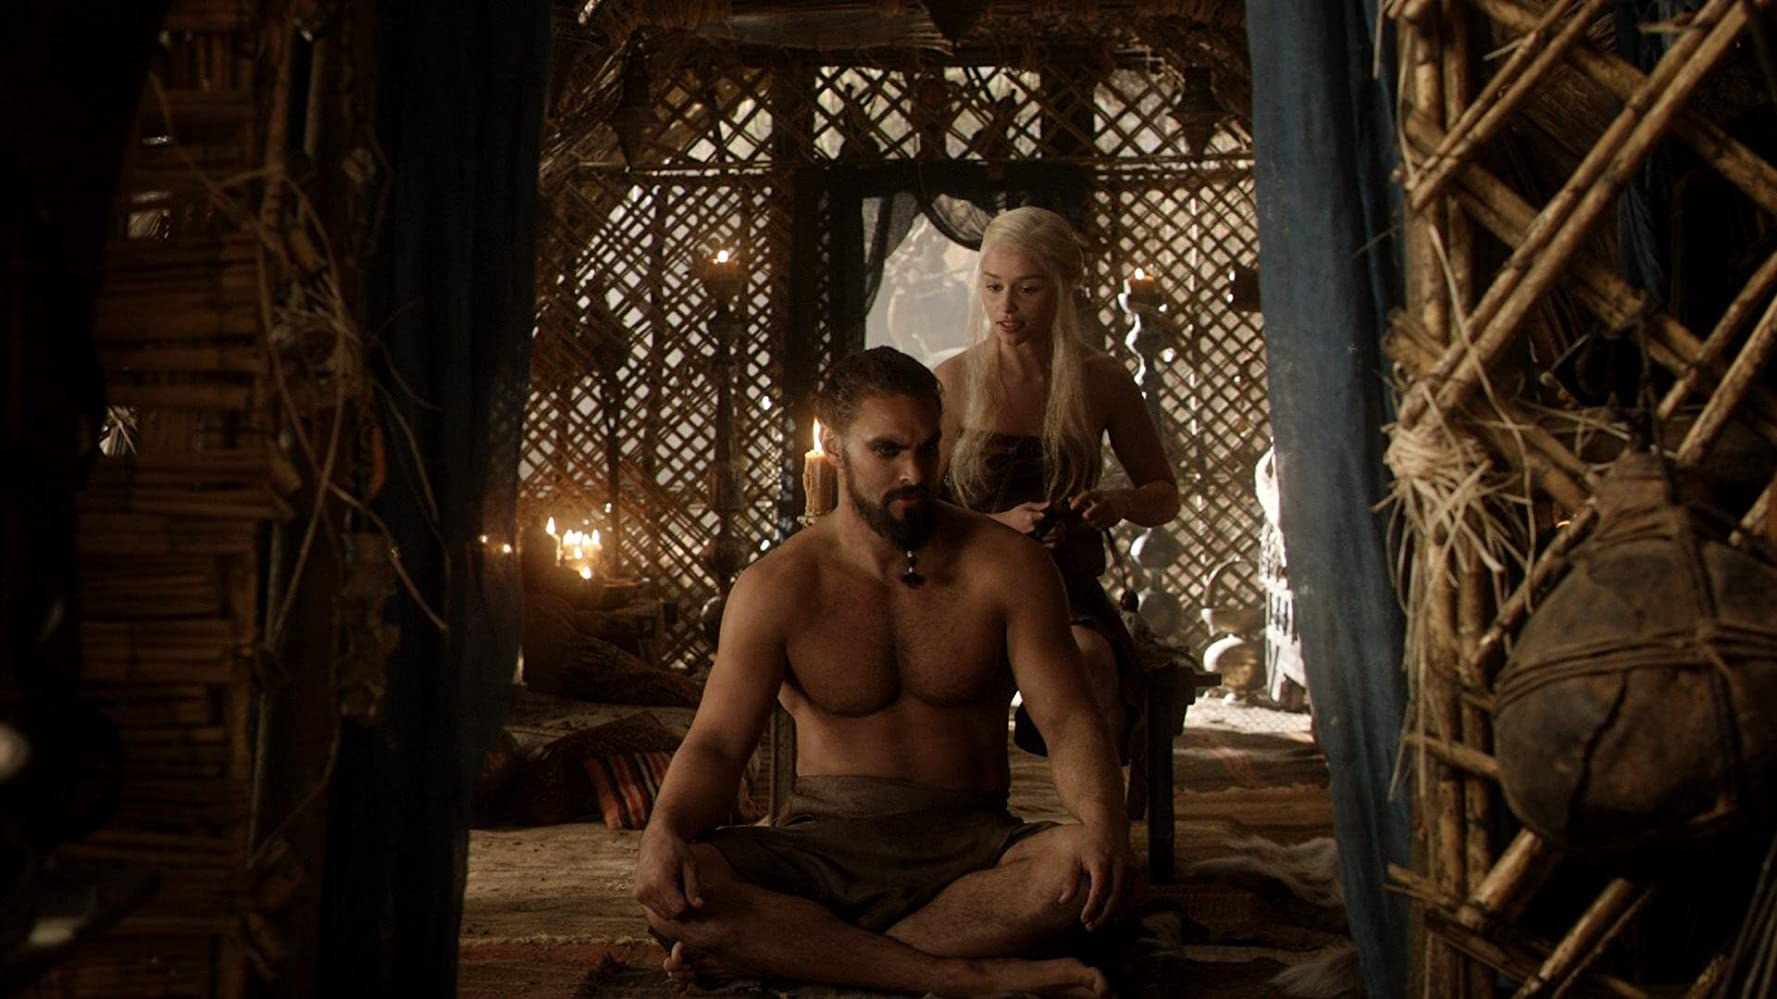 Jason Momoa and Emilia Clarke in Game of Thrones (2011)